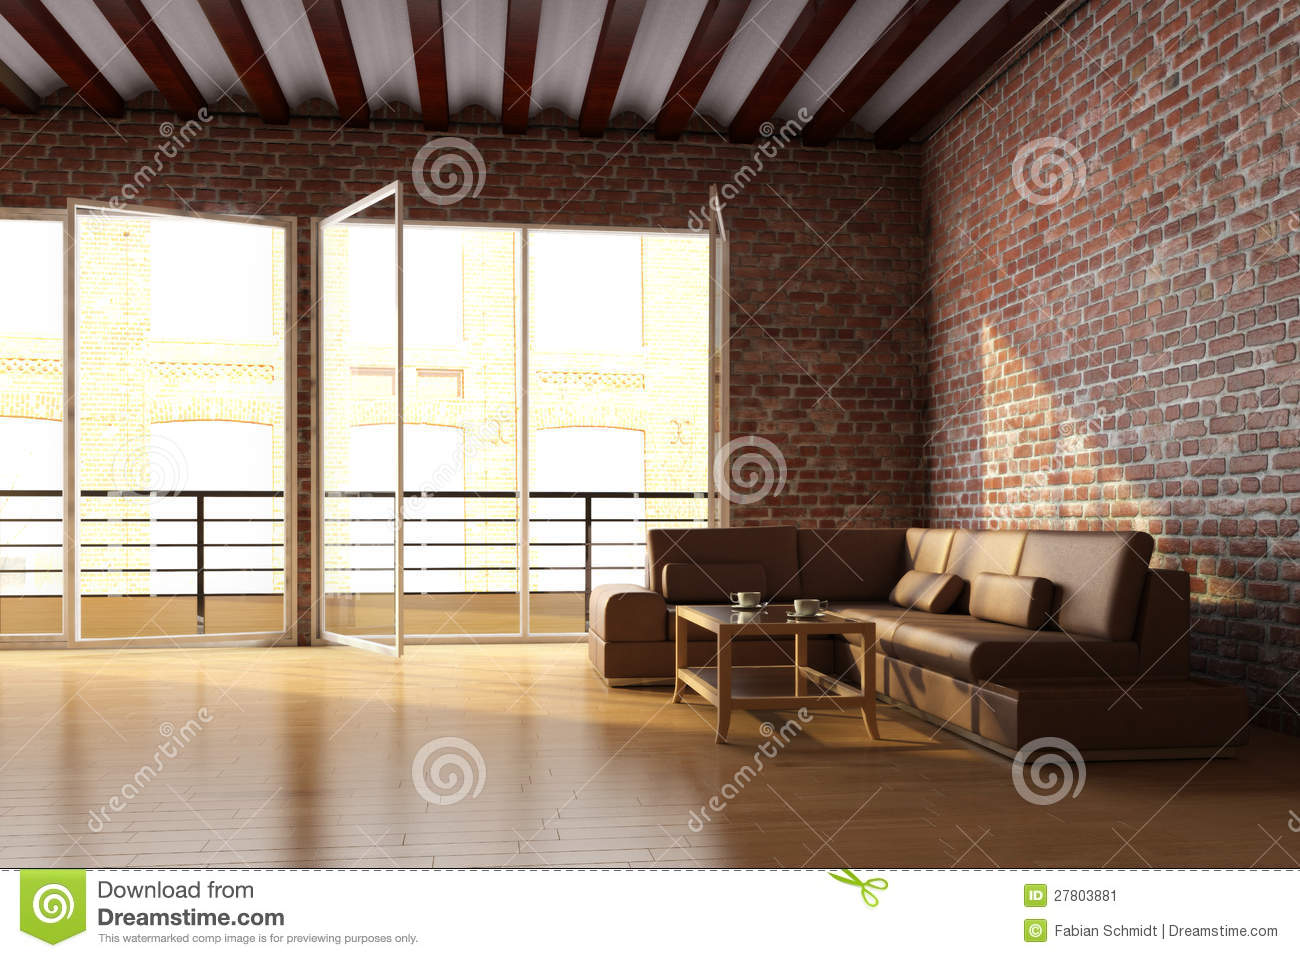 photo aka effect installing interior indoor warehouse homes brick dma wall inspiring